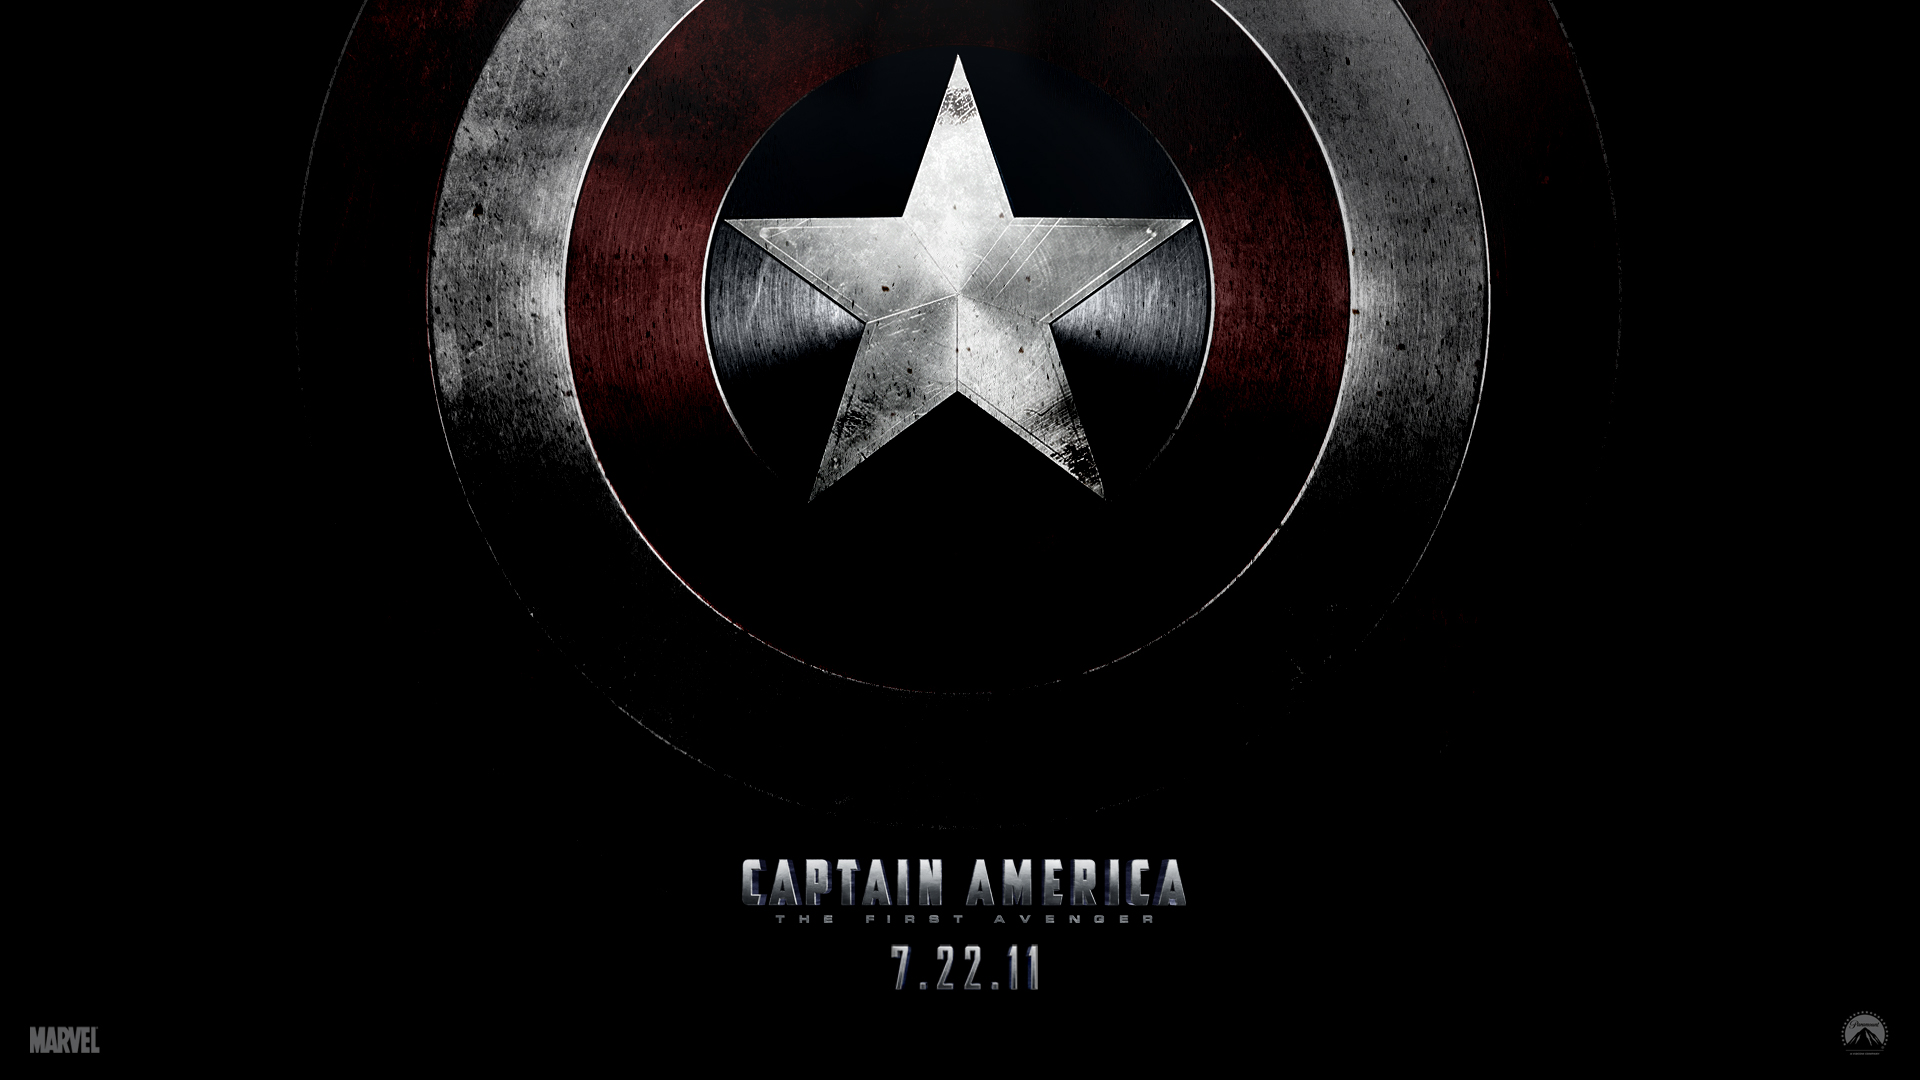 Hd wallpaper of captain america - 56 Captain America The First Avenger Hd Wallpapers Backgrounds Wallpaper Abyss